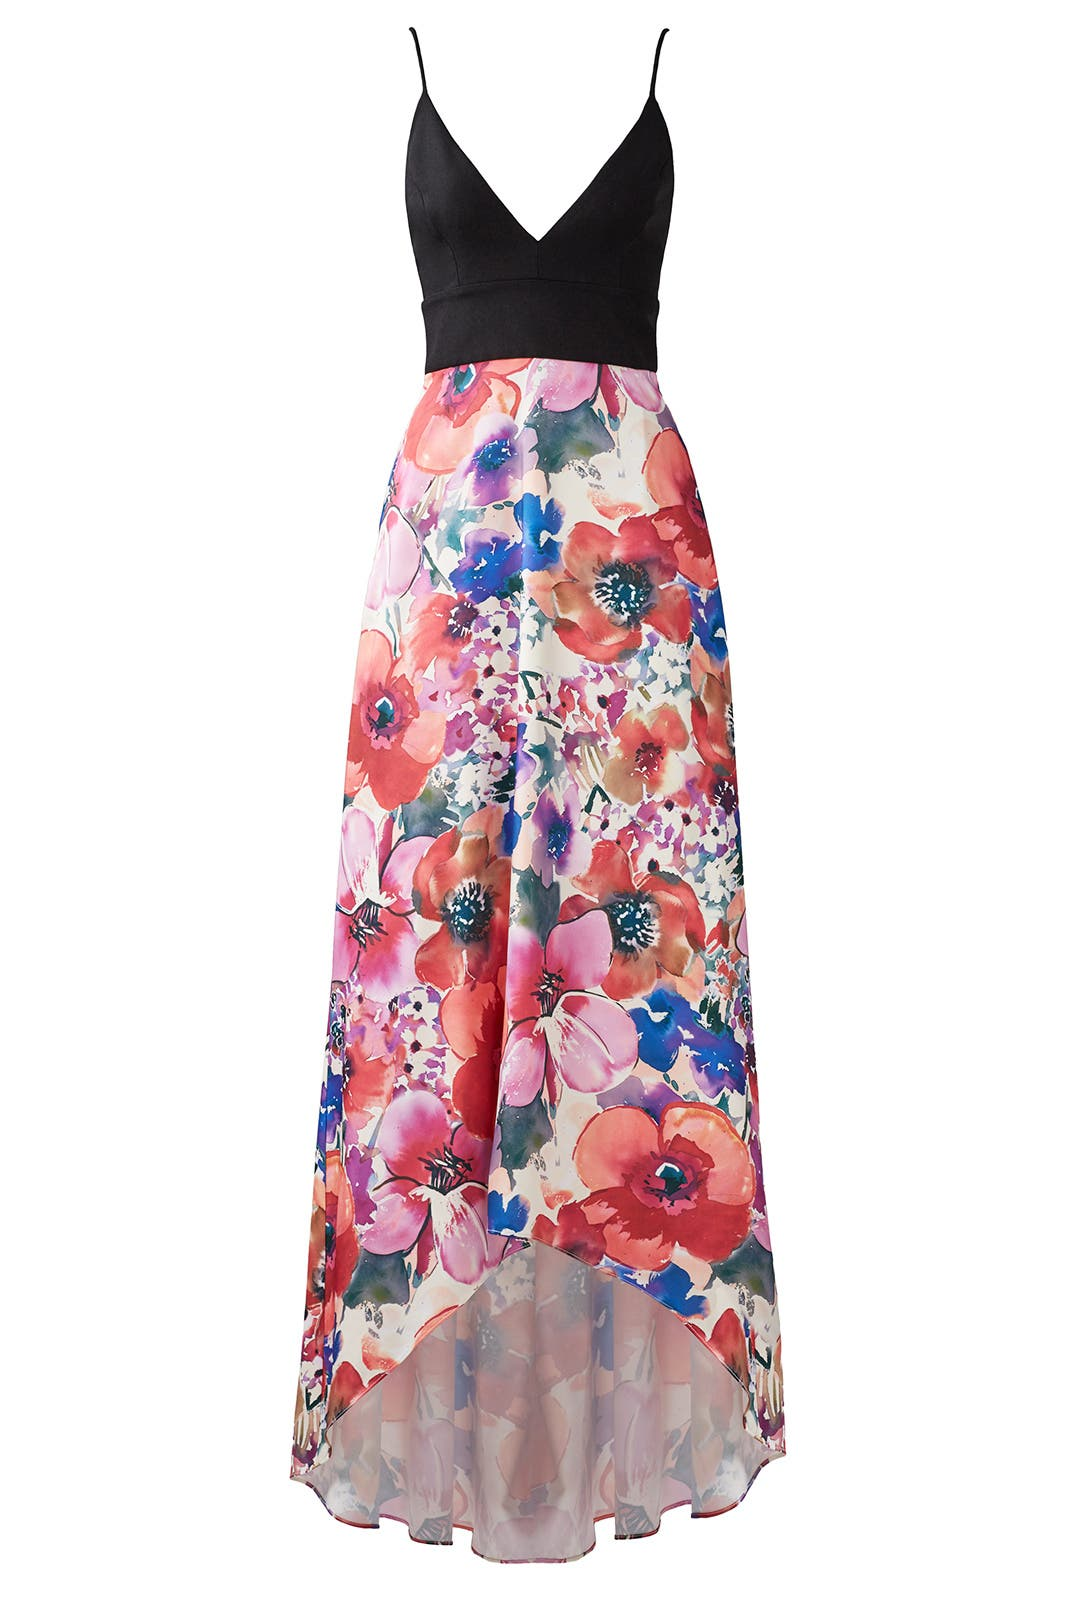 Bright Floral Gown by Badgley Mischka for $100 - $120   Rent the Runway